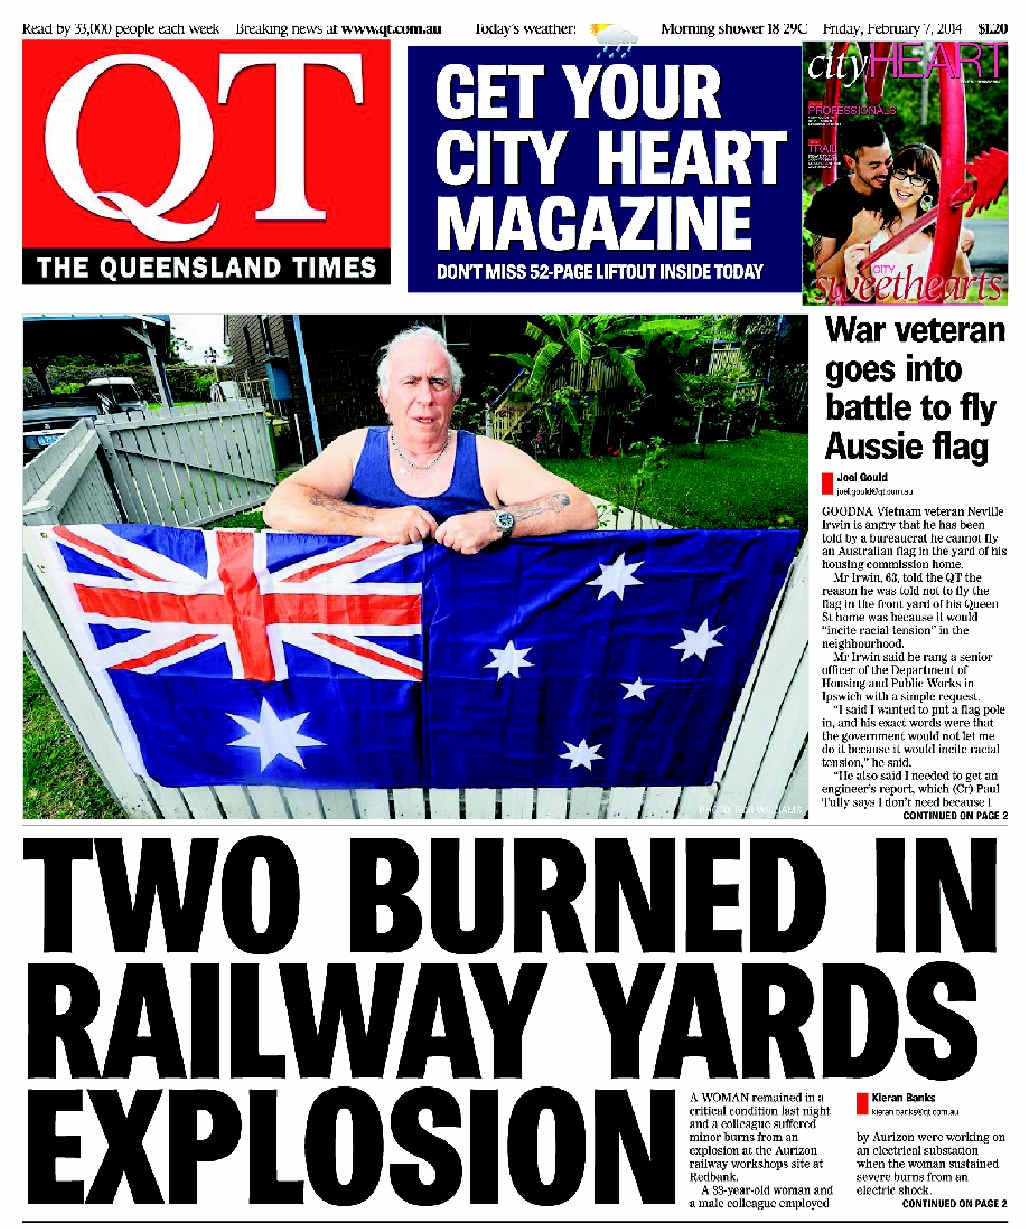 The front page of the QT on February 7, 2014.